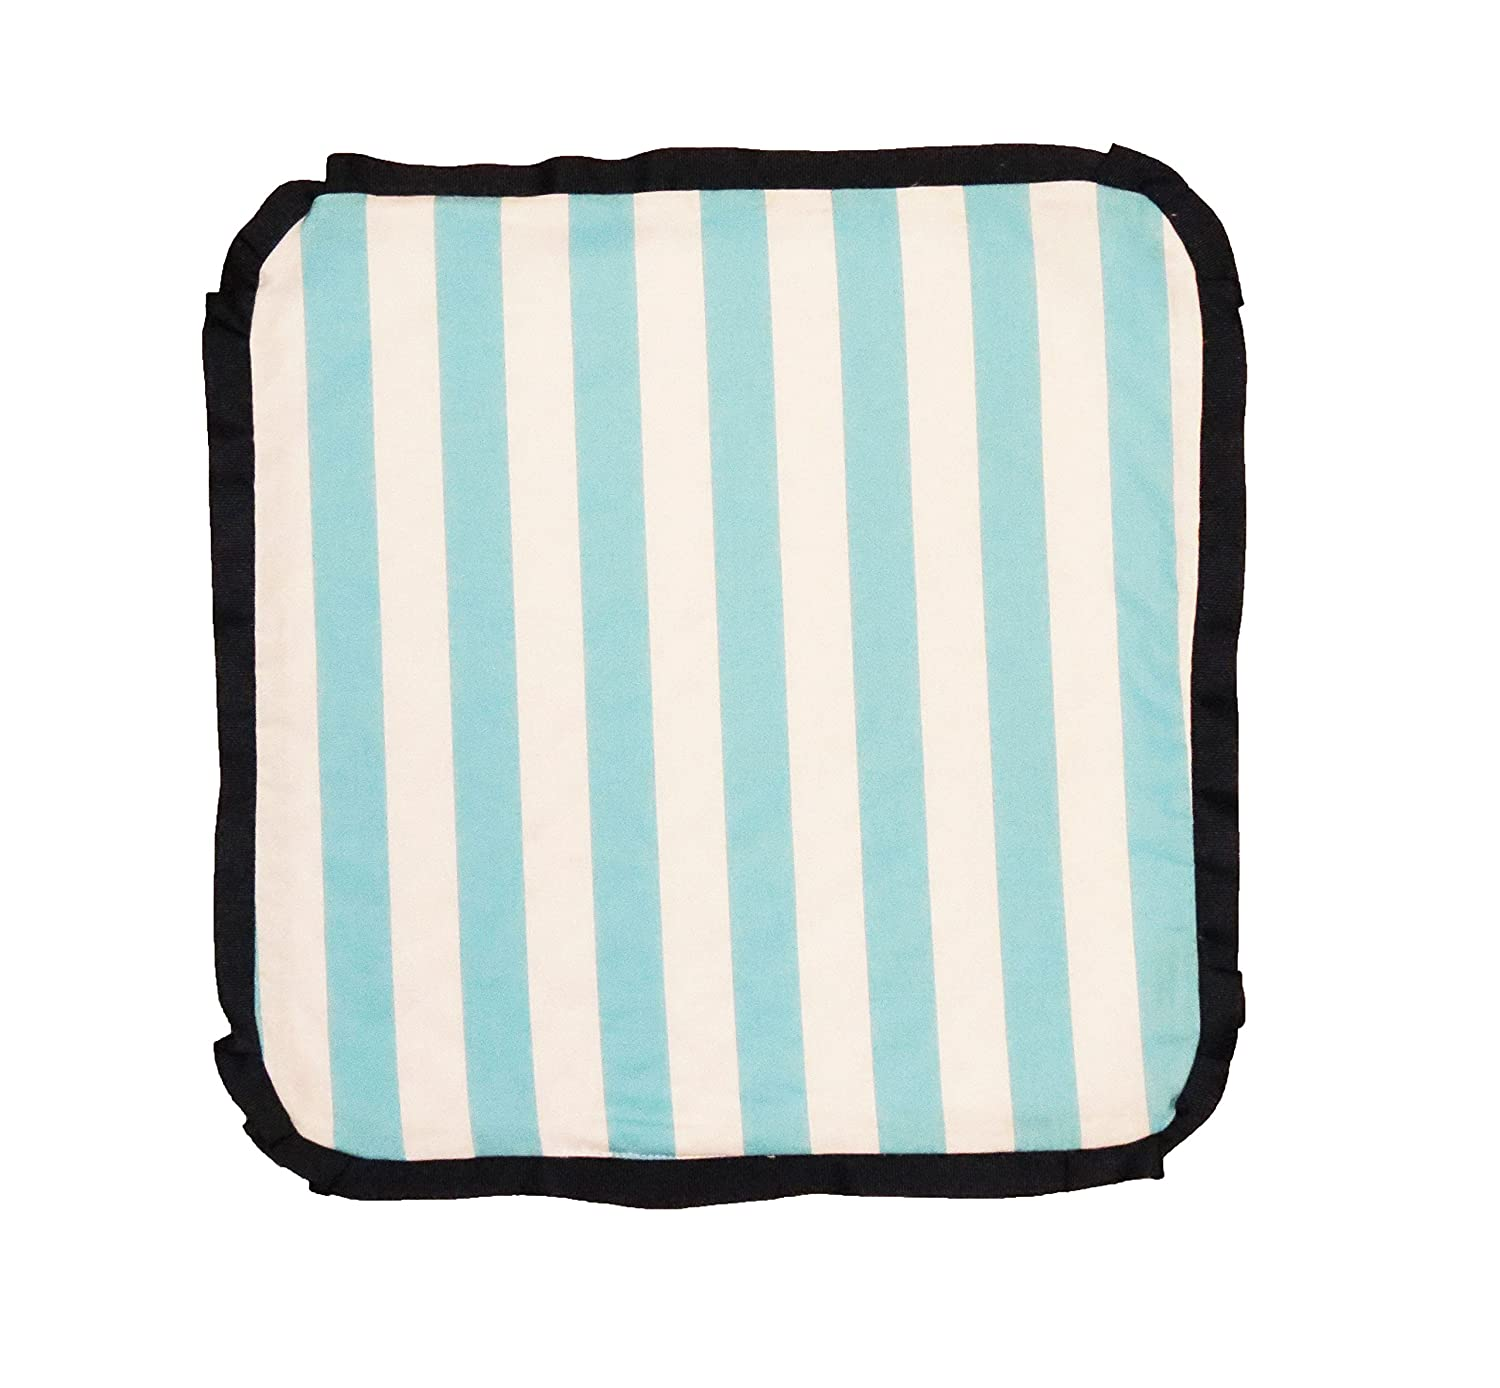 Caught Ya Lookin' Baby Thumb Blanket, Boys Blue and White Striped by Caught Ya Lookin'   B00KYP5GZA